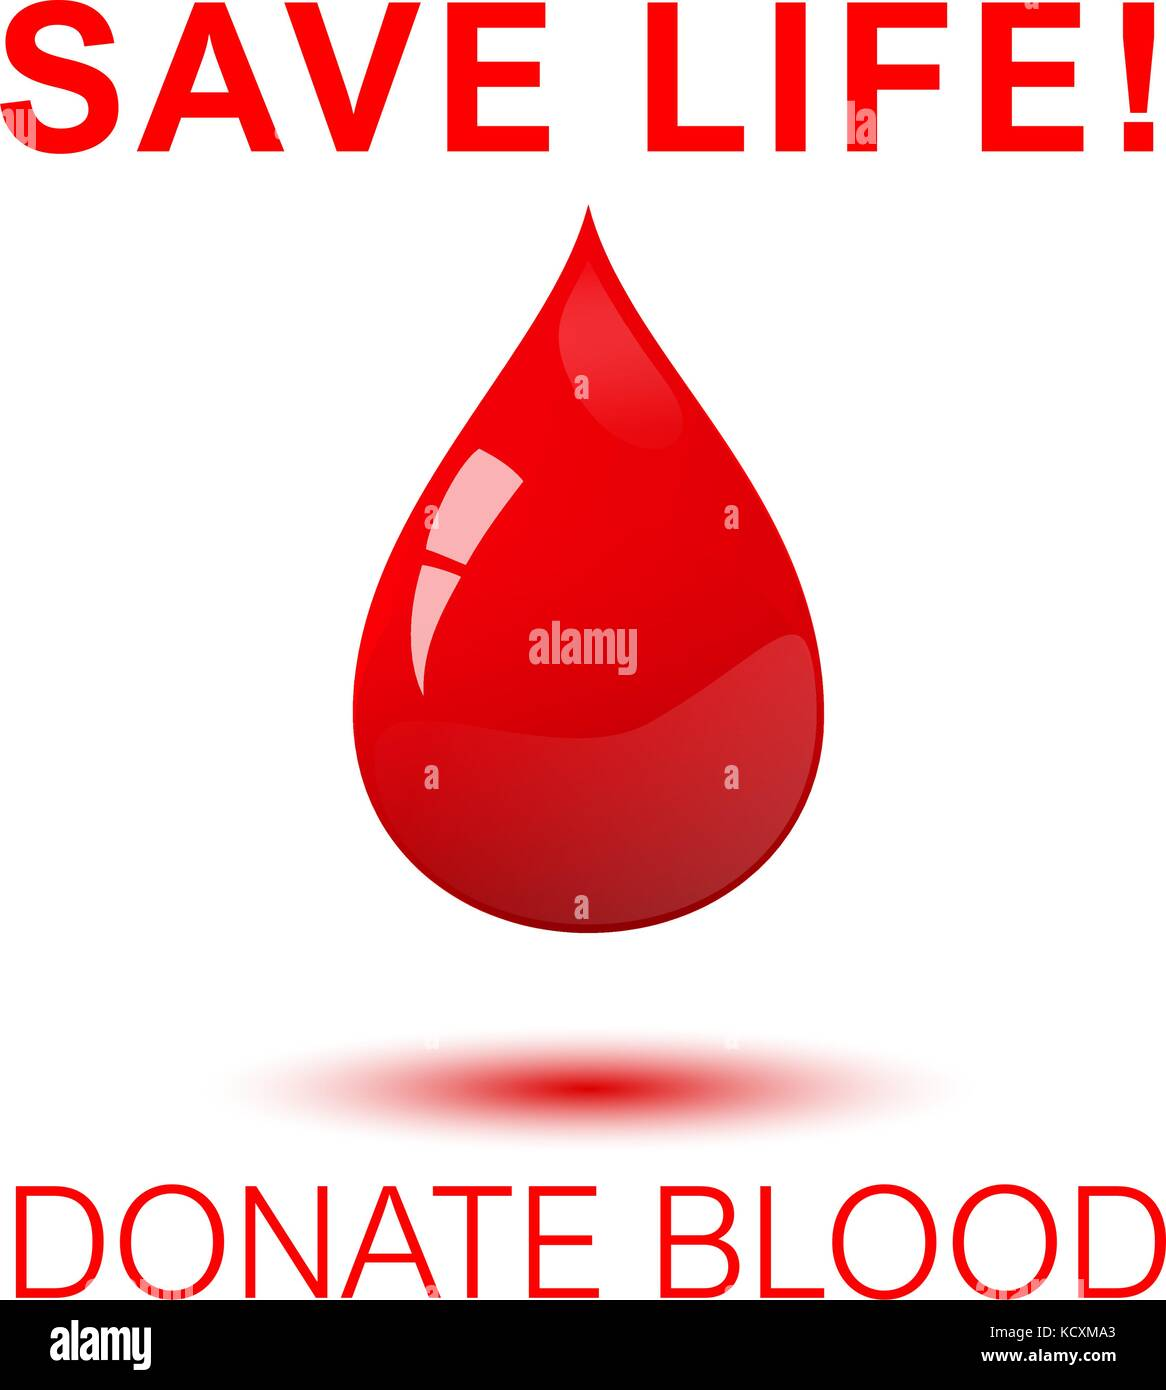 Save life - donate blood square concept poster. - Stock Image